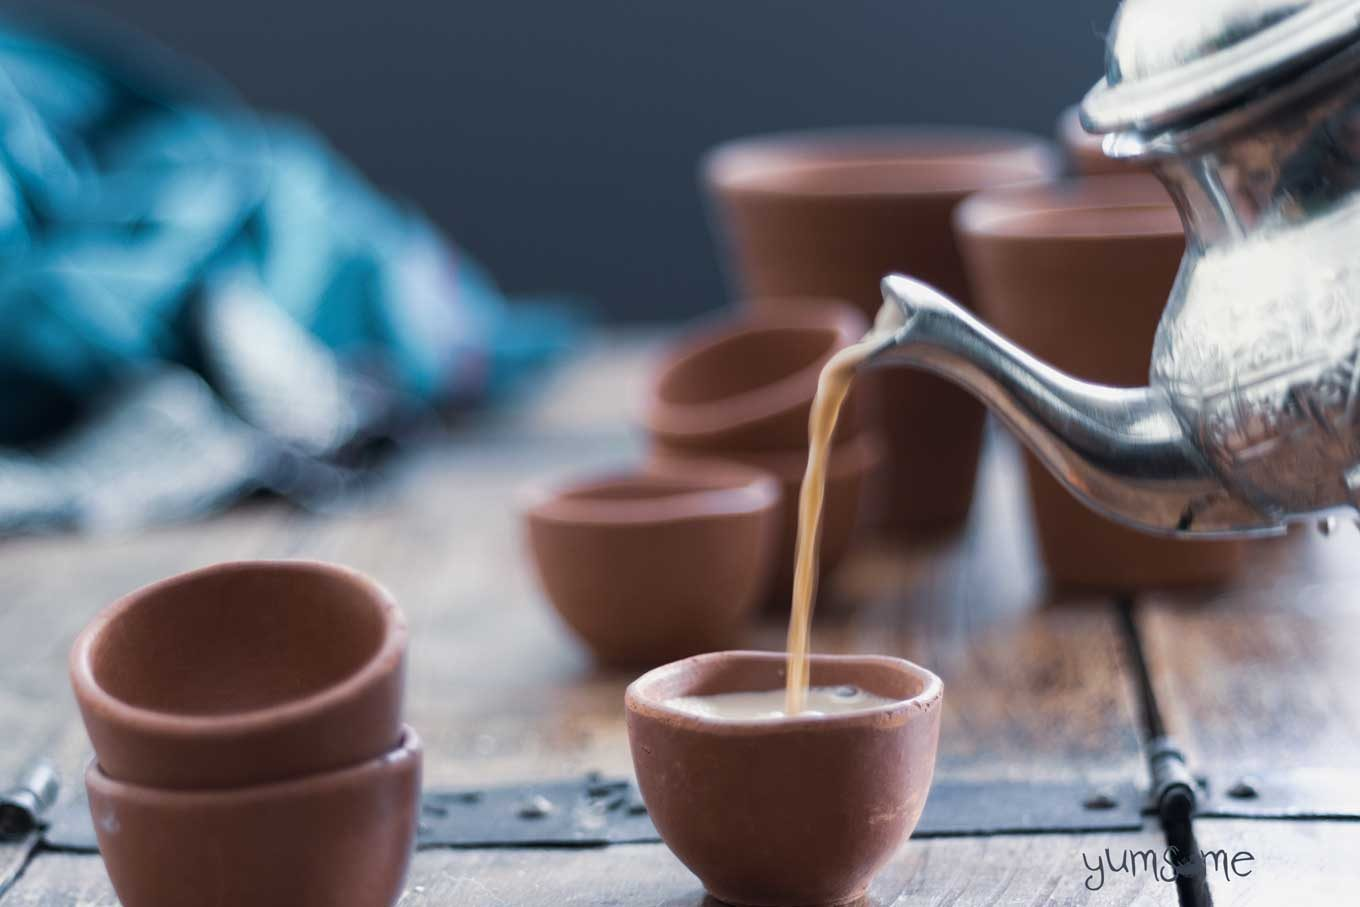 Vegan masala chai being poured into a small kulhar from a silver tea pot.